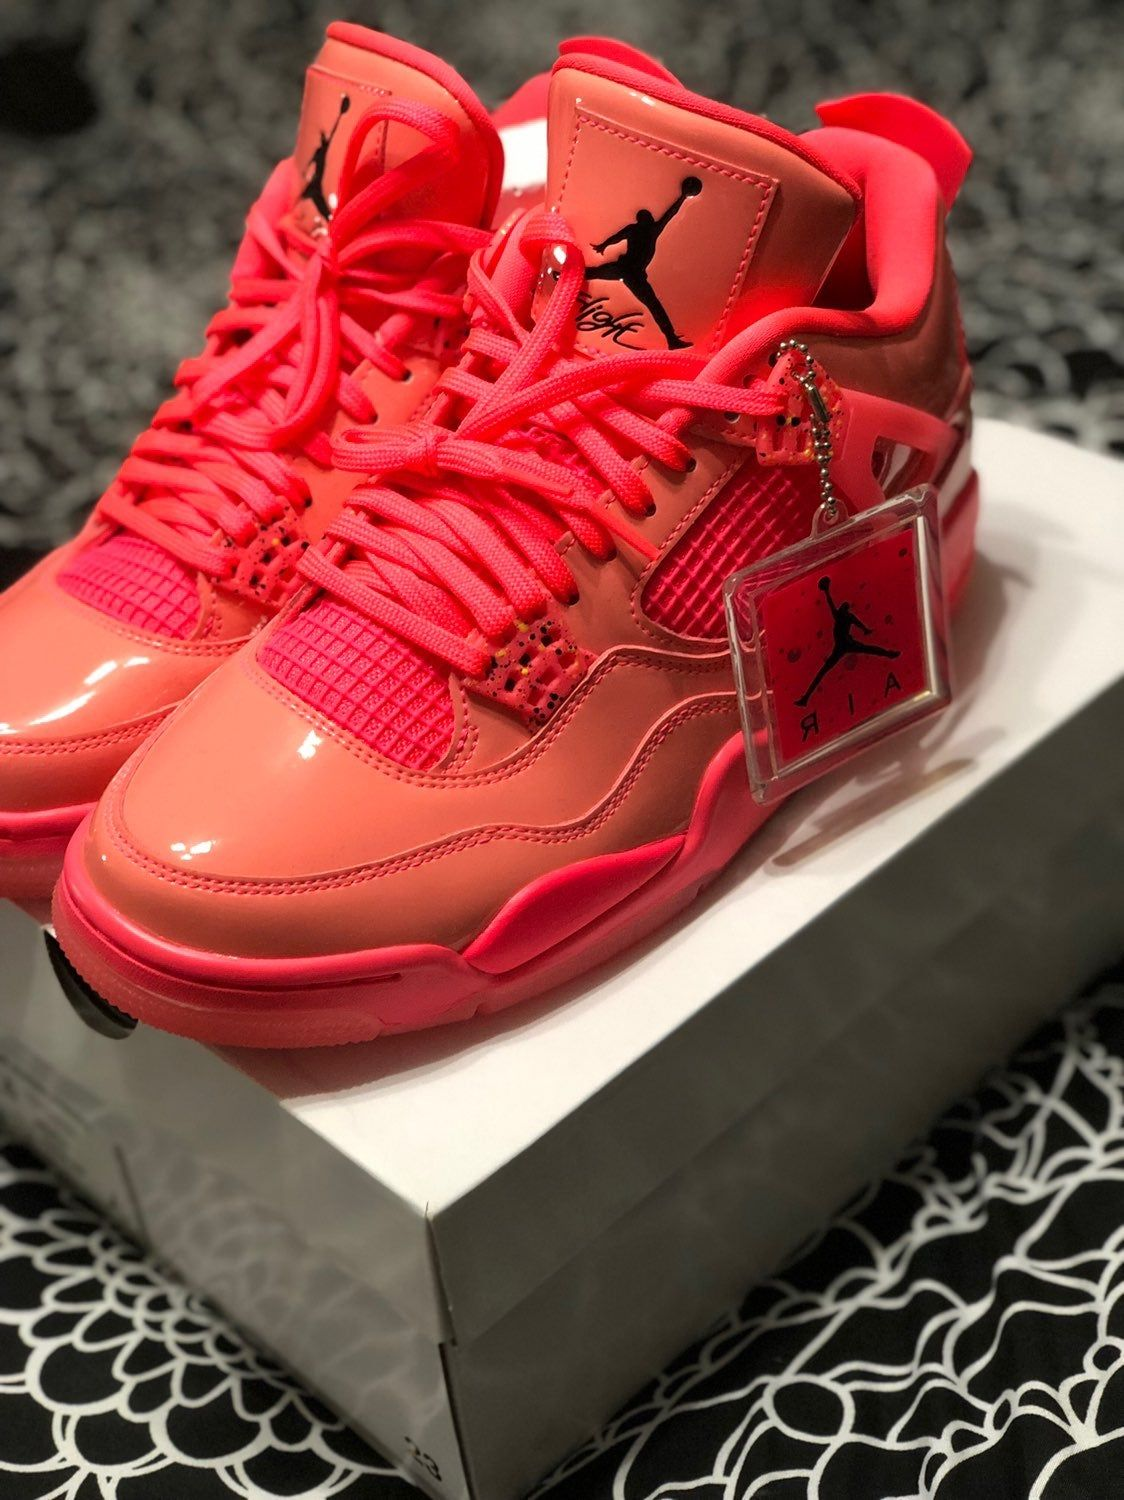 Brand new never worn comes with original box size 105